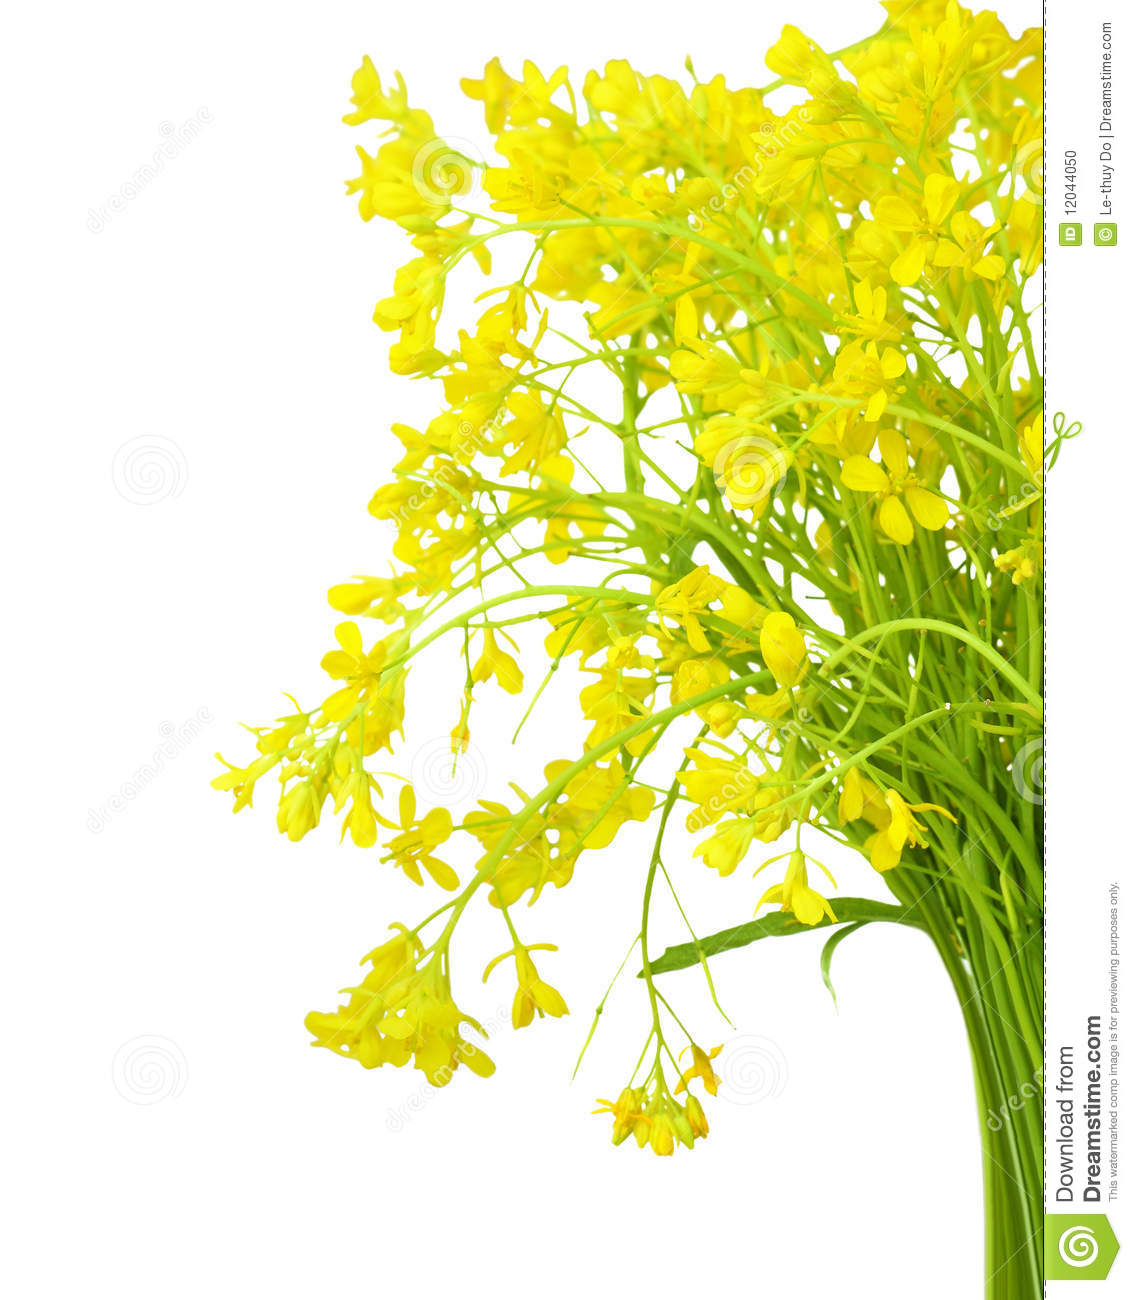 Rapeseed clipart #9, Download drawings